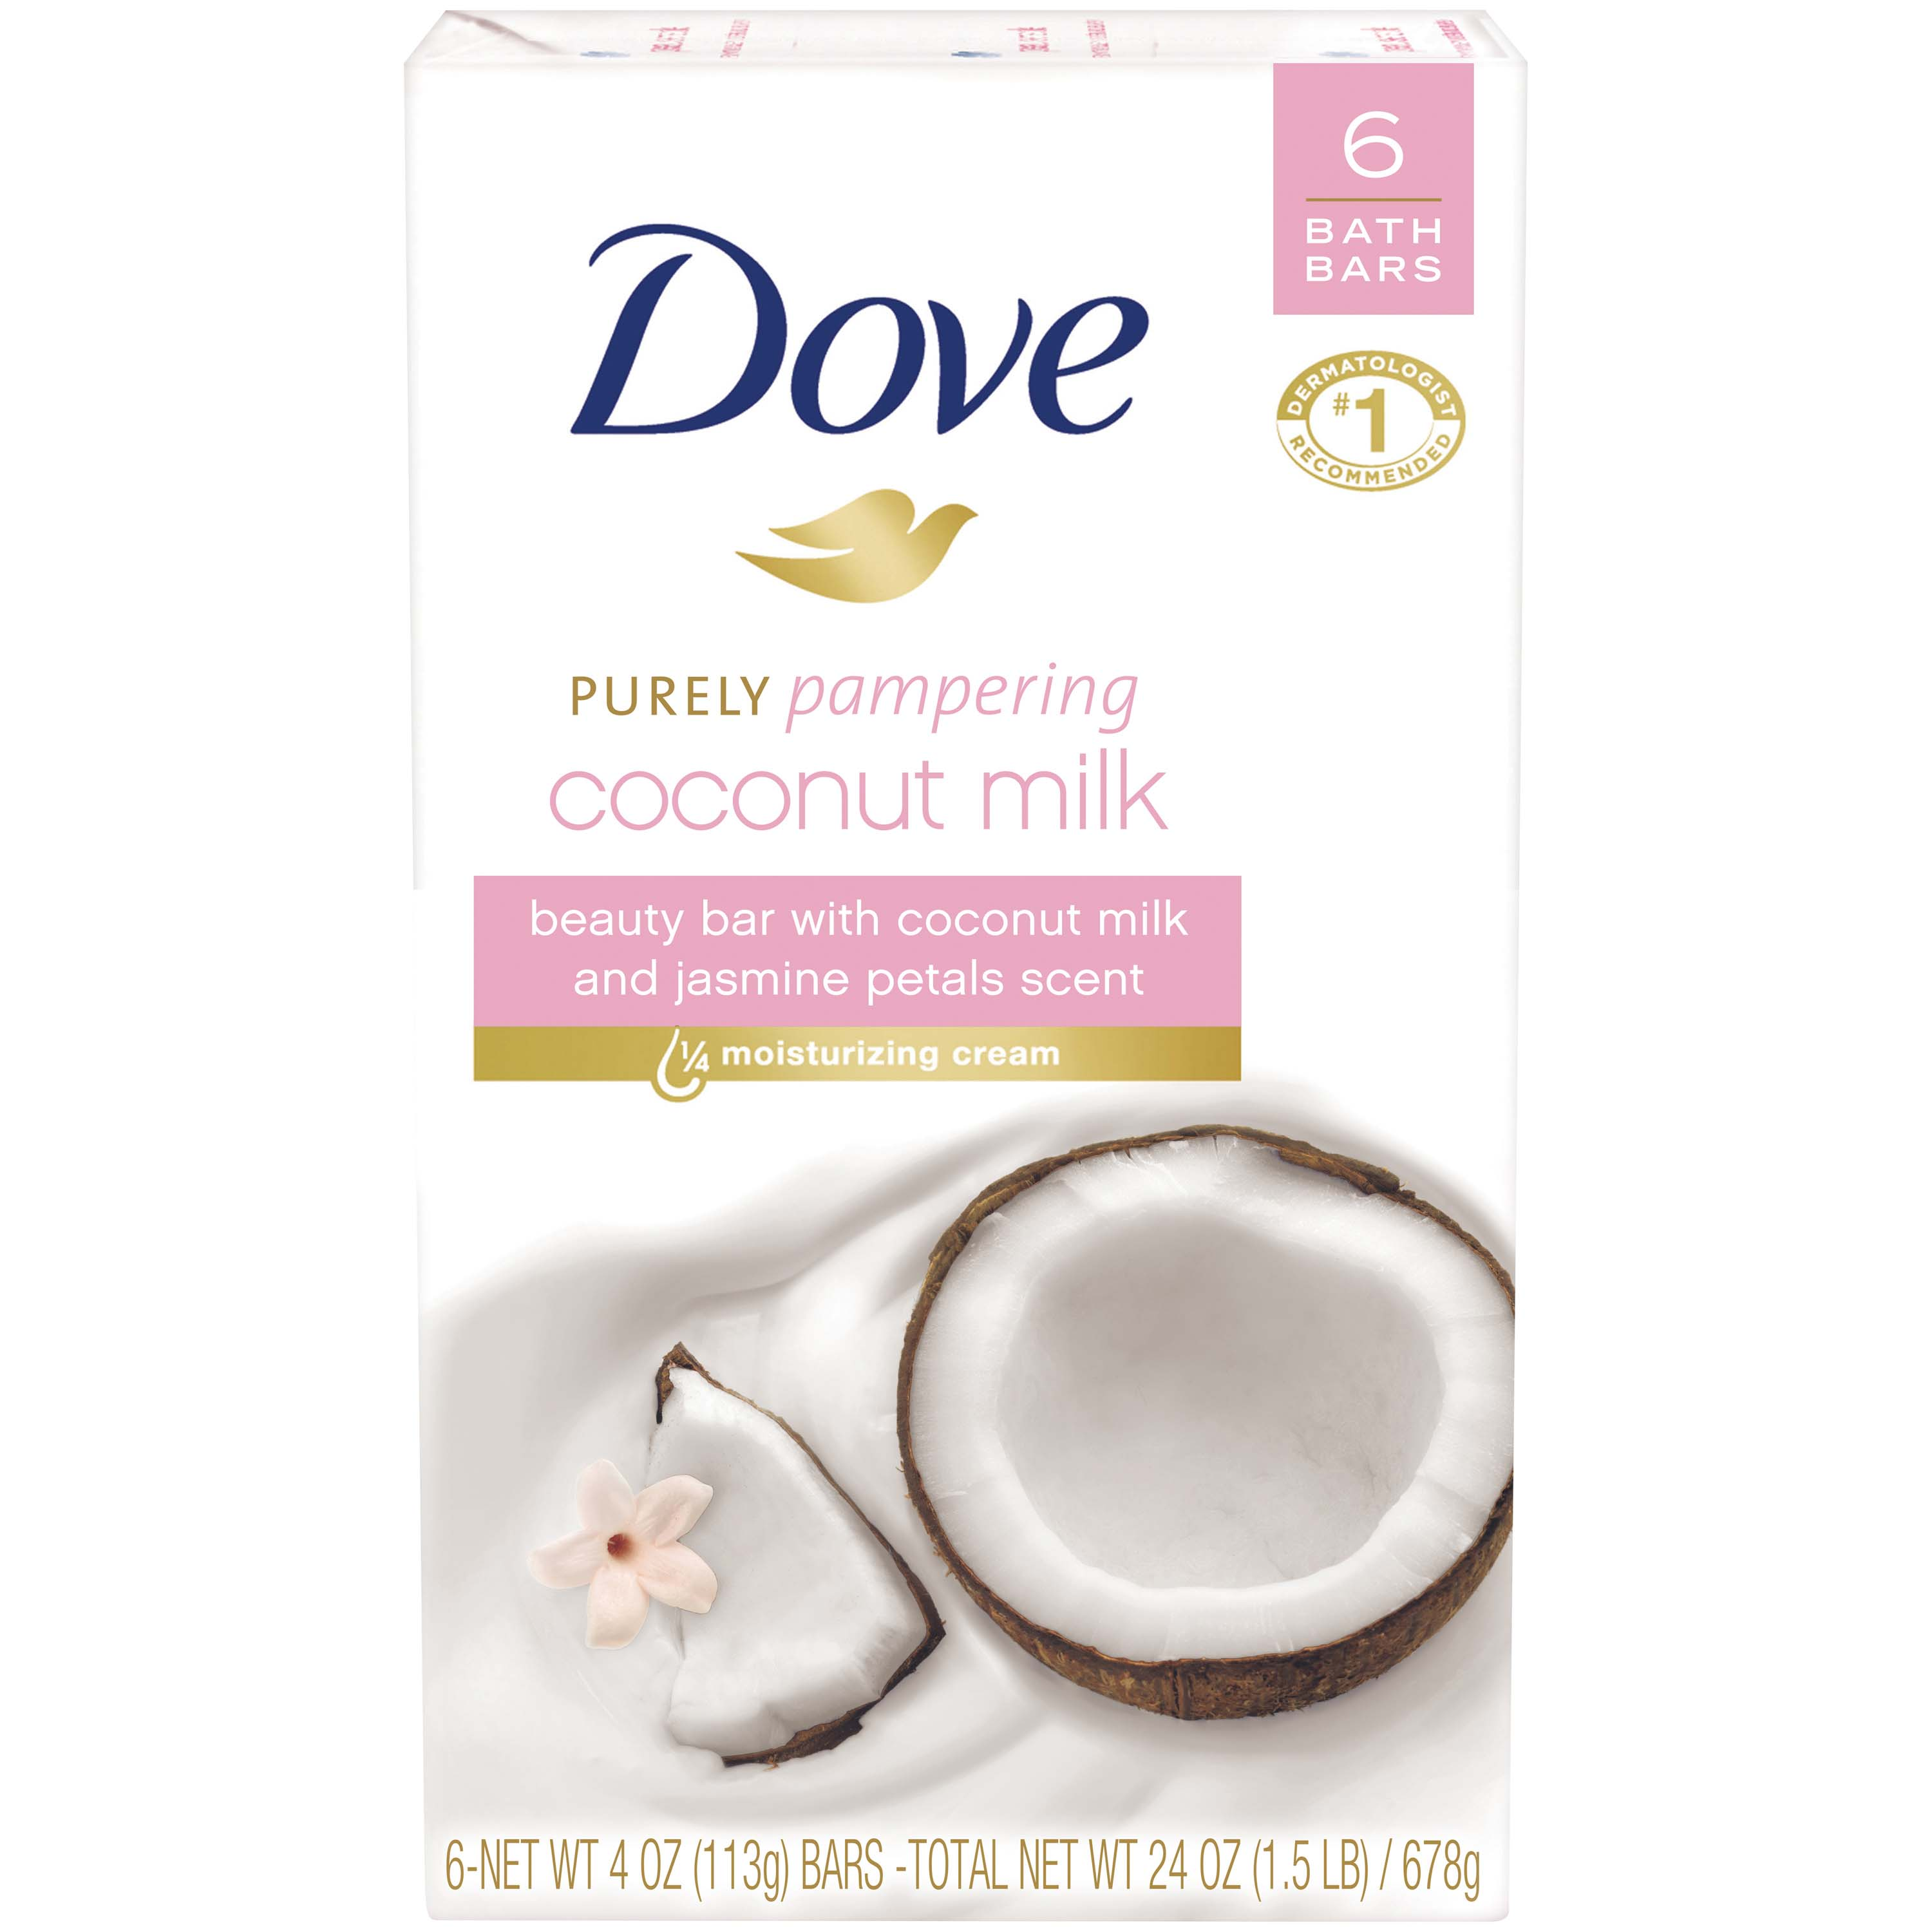 Dove Coconut Milk Beauty Bar, 4 oz, 6 Bar